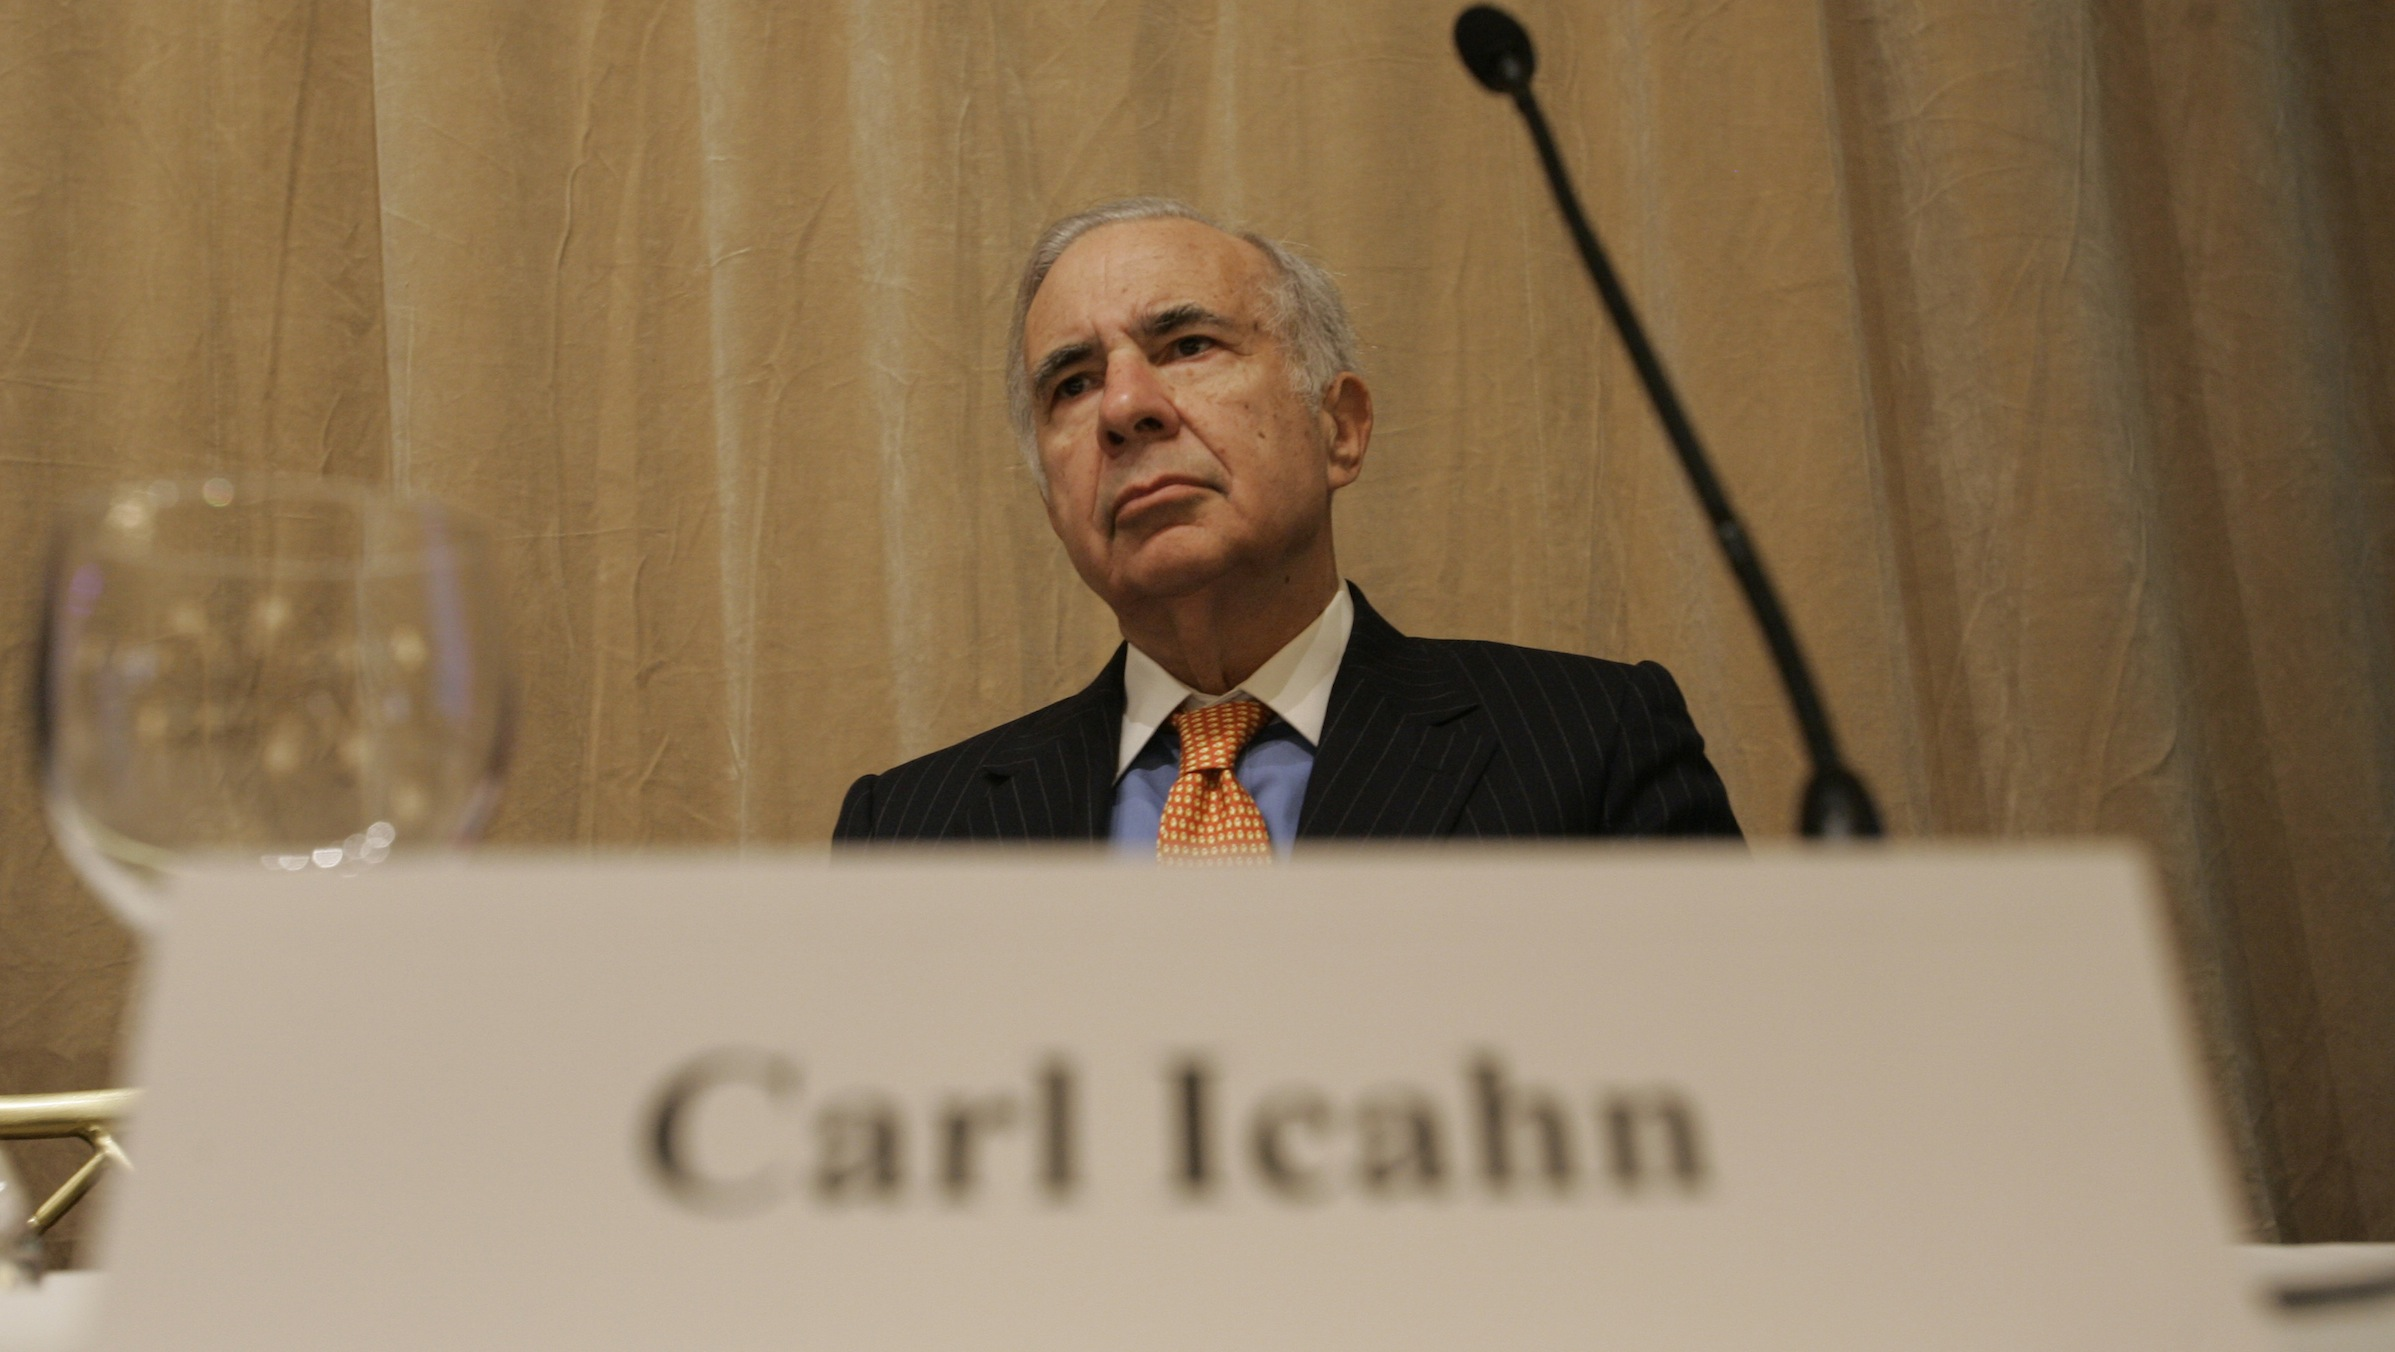 Financier Carl Icahn attends  a news conference about Time Warner Inc. Tuesday, Feb. 7, 2006 in New York. Icahn is leading a group of investors who want a shake-up at Time Warner. Icahn's demands include larger share buybacks and a complete spinoff of Time Warner's cable TV division. (AP Photo/Shiho Fukada).